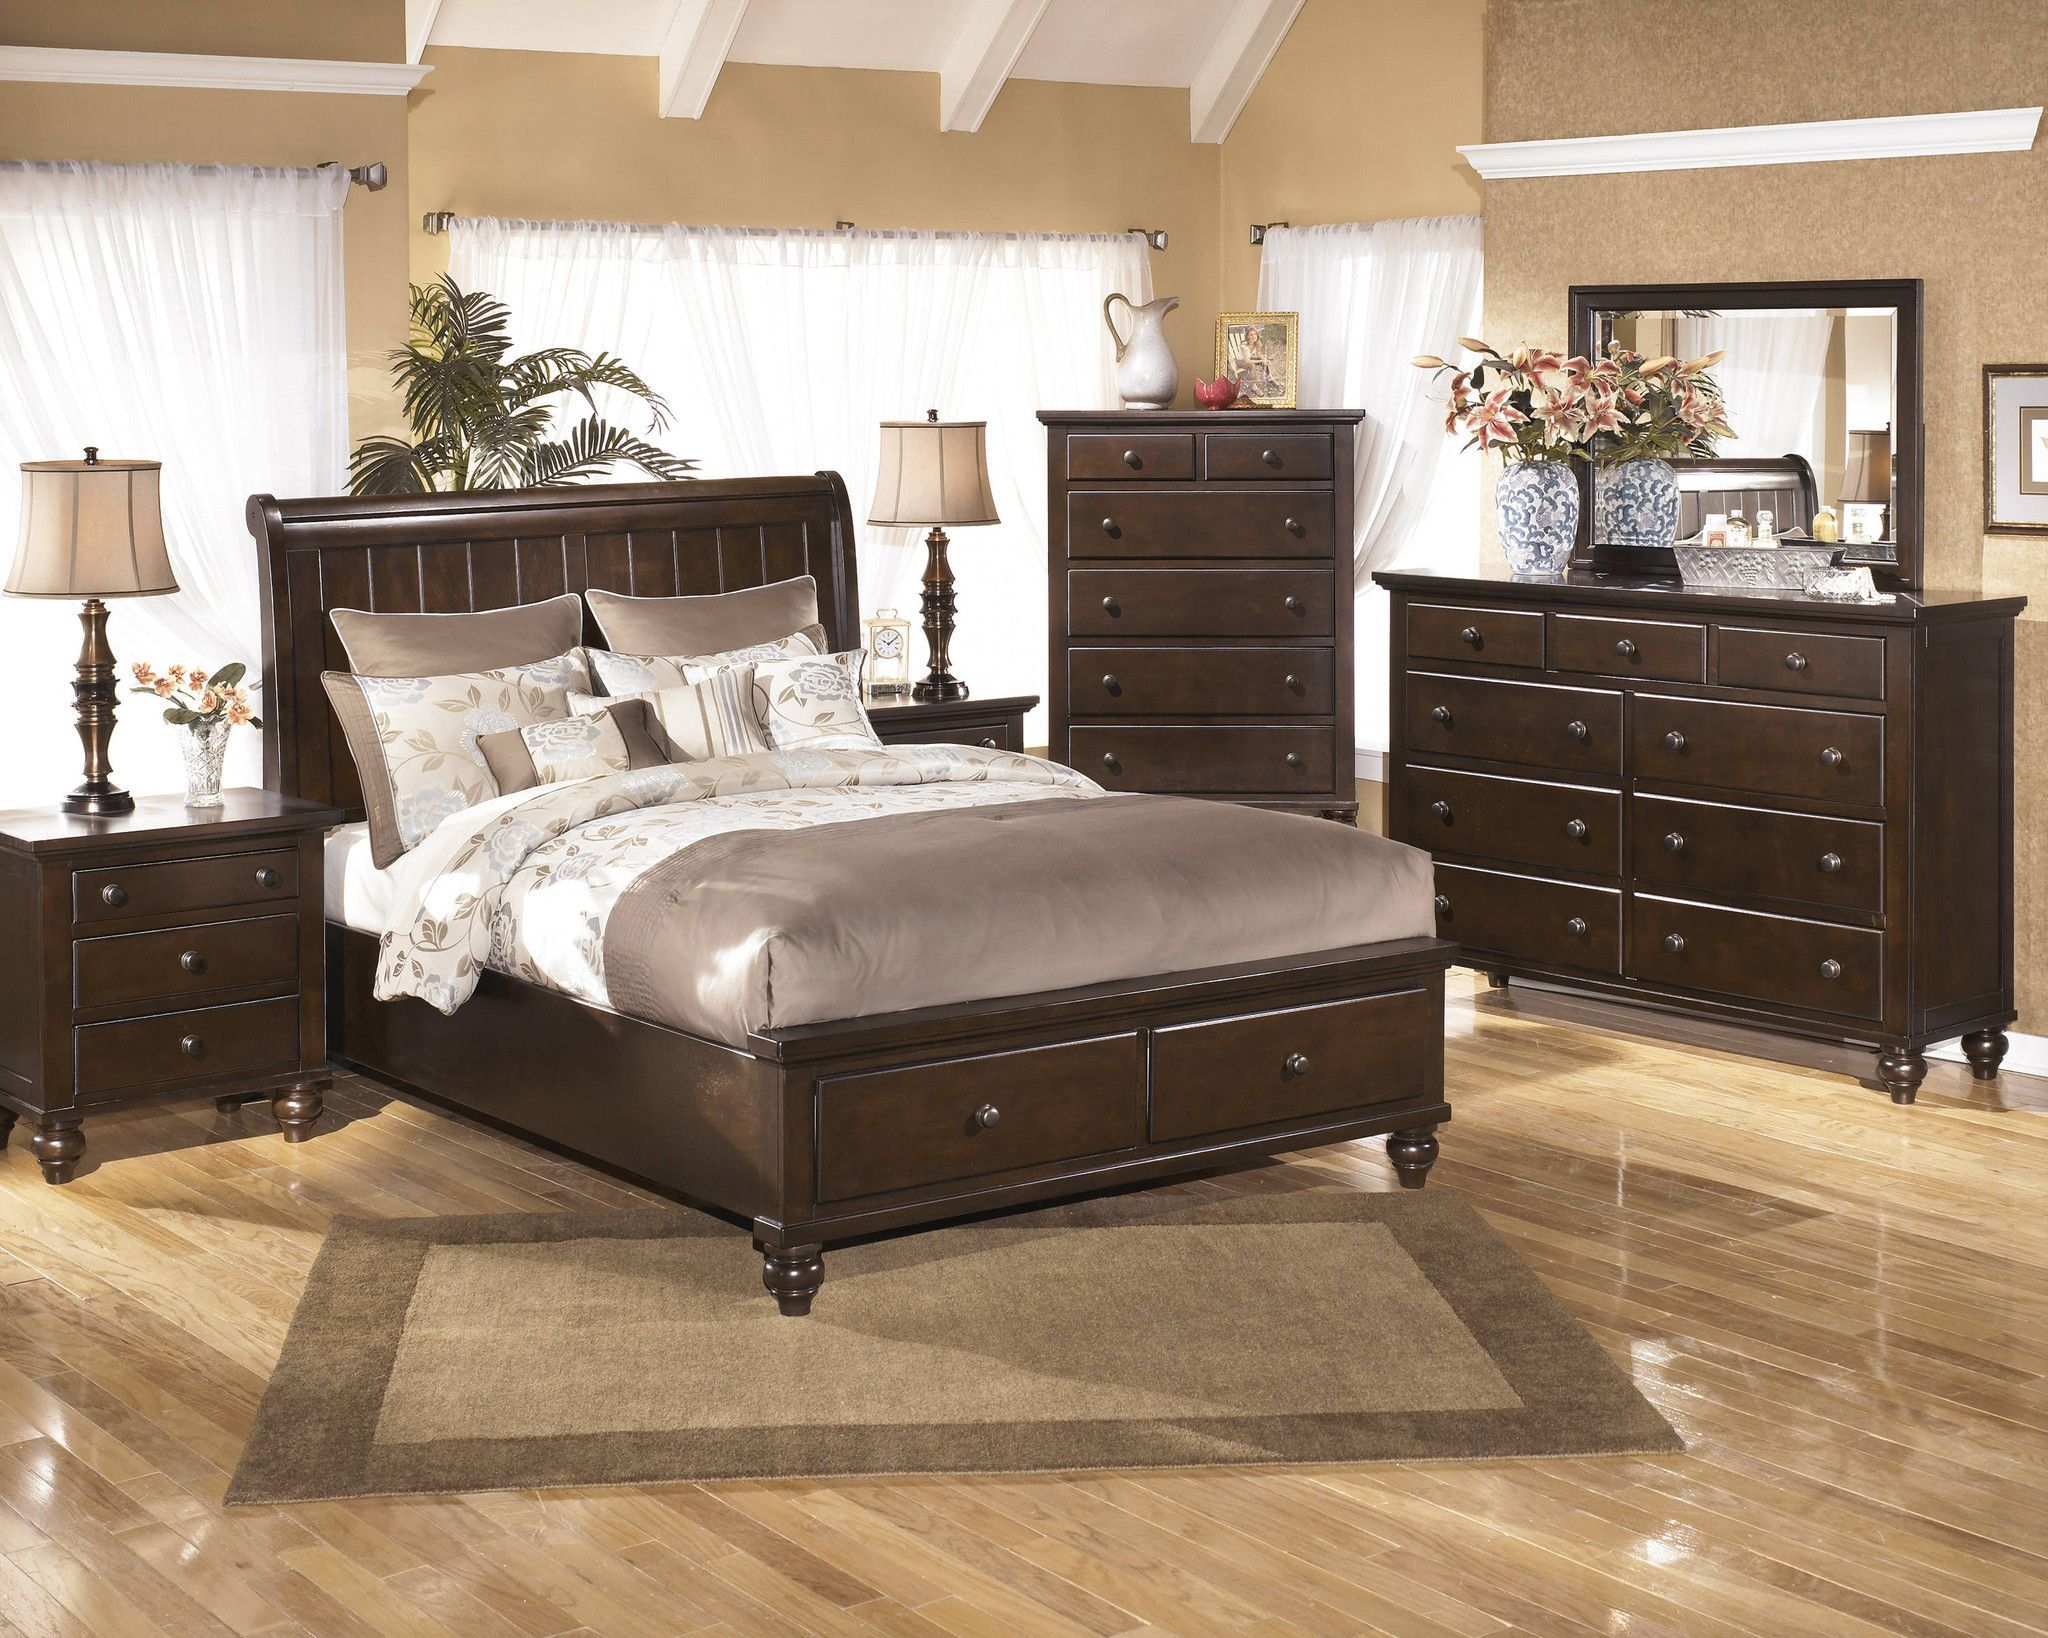 Camdyn Storage King Bedroom Set By Ashley Furniture Dormitorios Decoraciones De Casa Camas